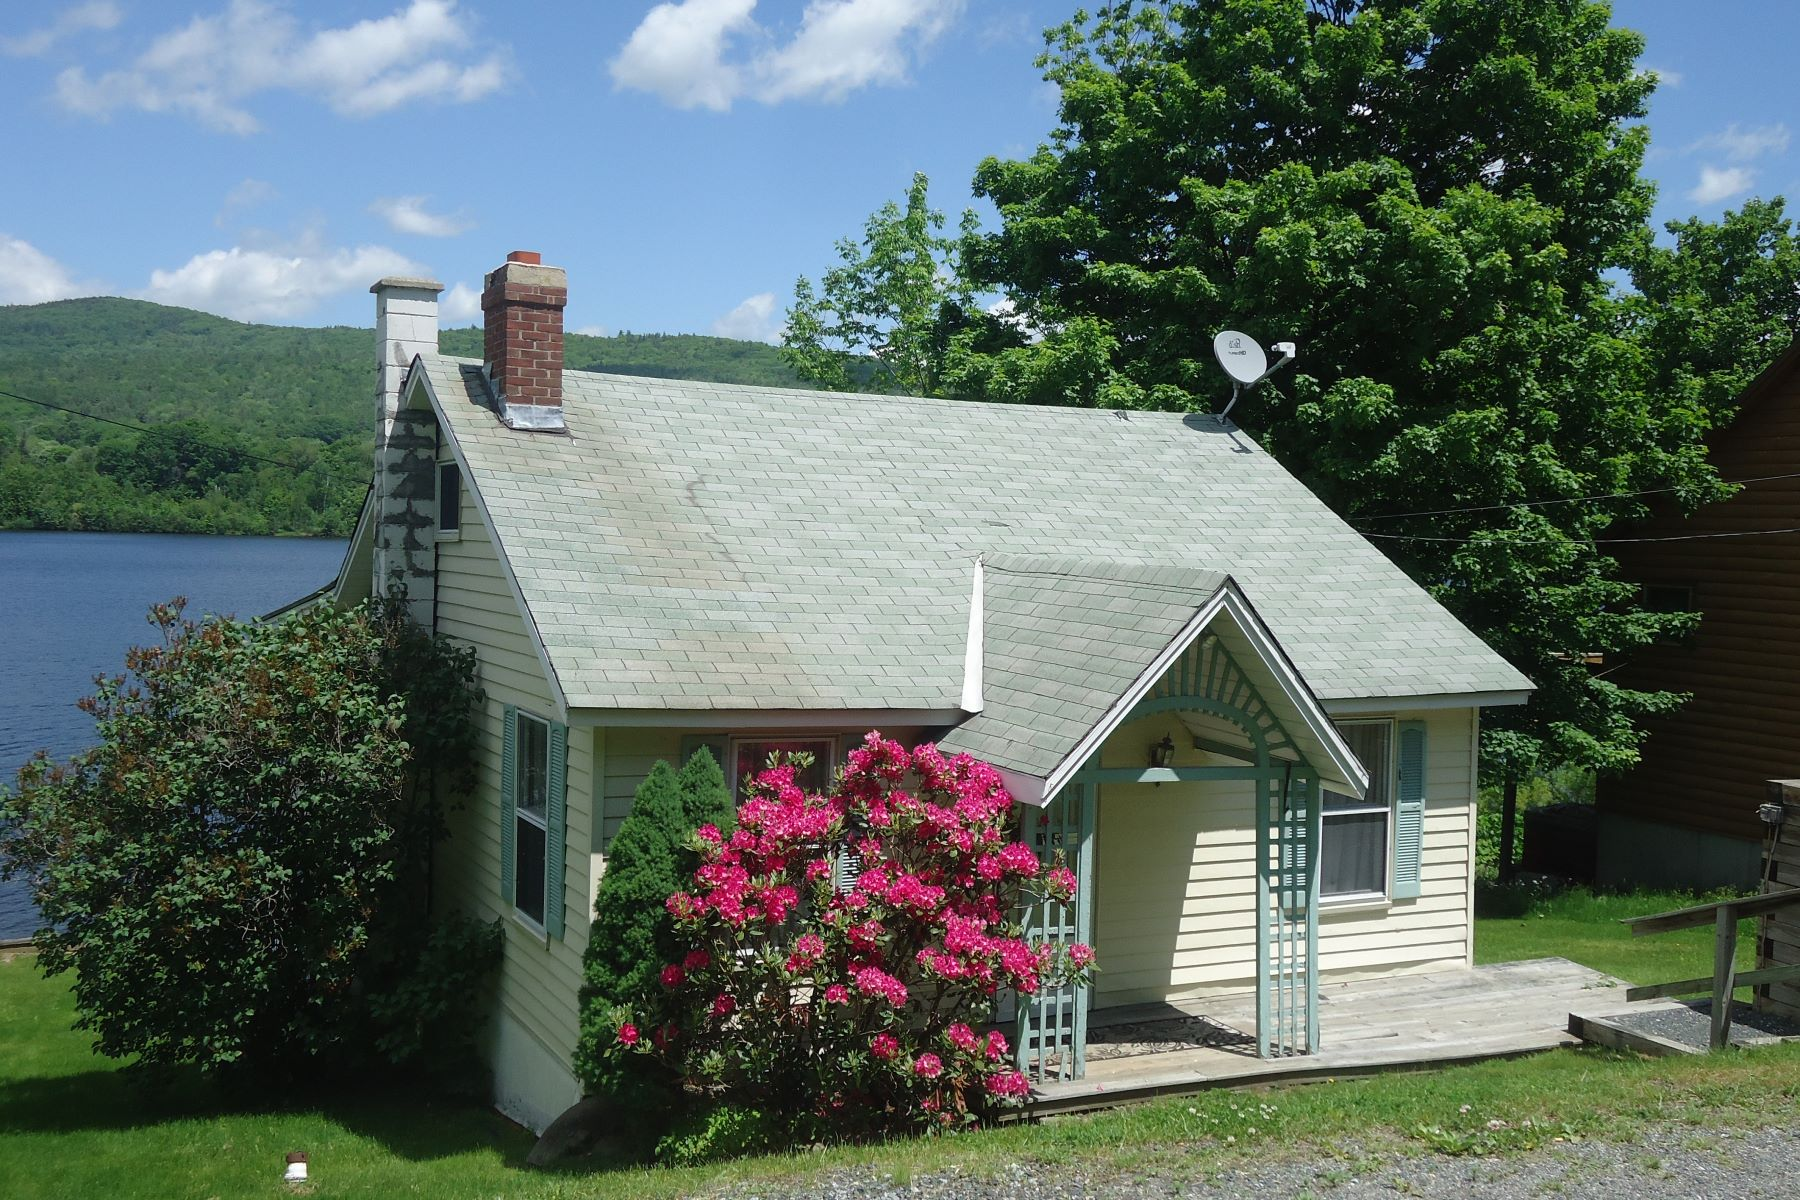 Single Family Home for Sale at 109 Us Route 4a, Lebanon Lebanon, New Hampshire, 03766 United States